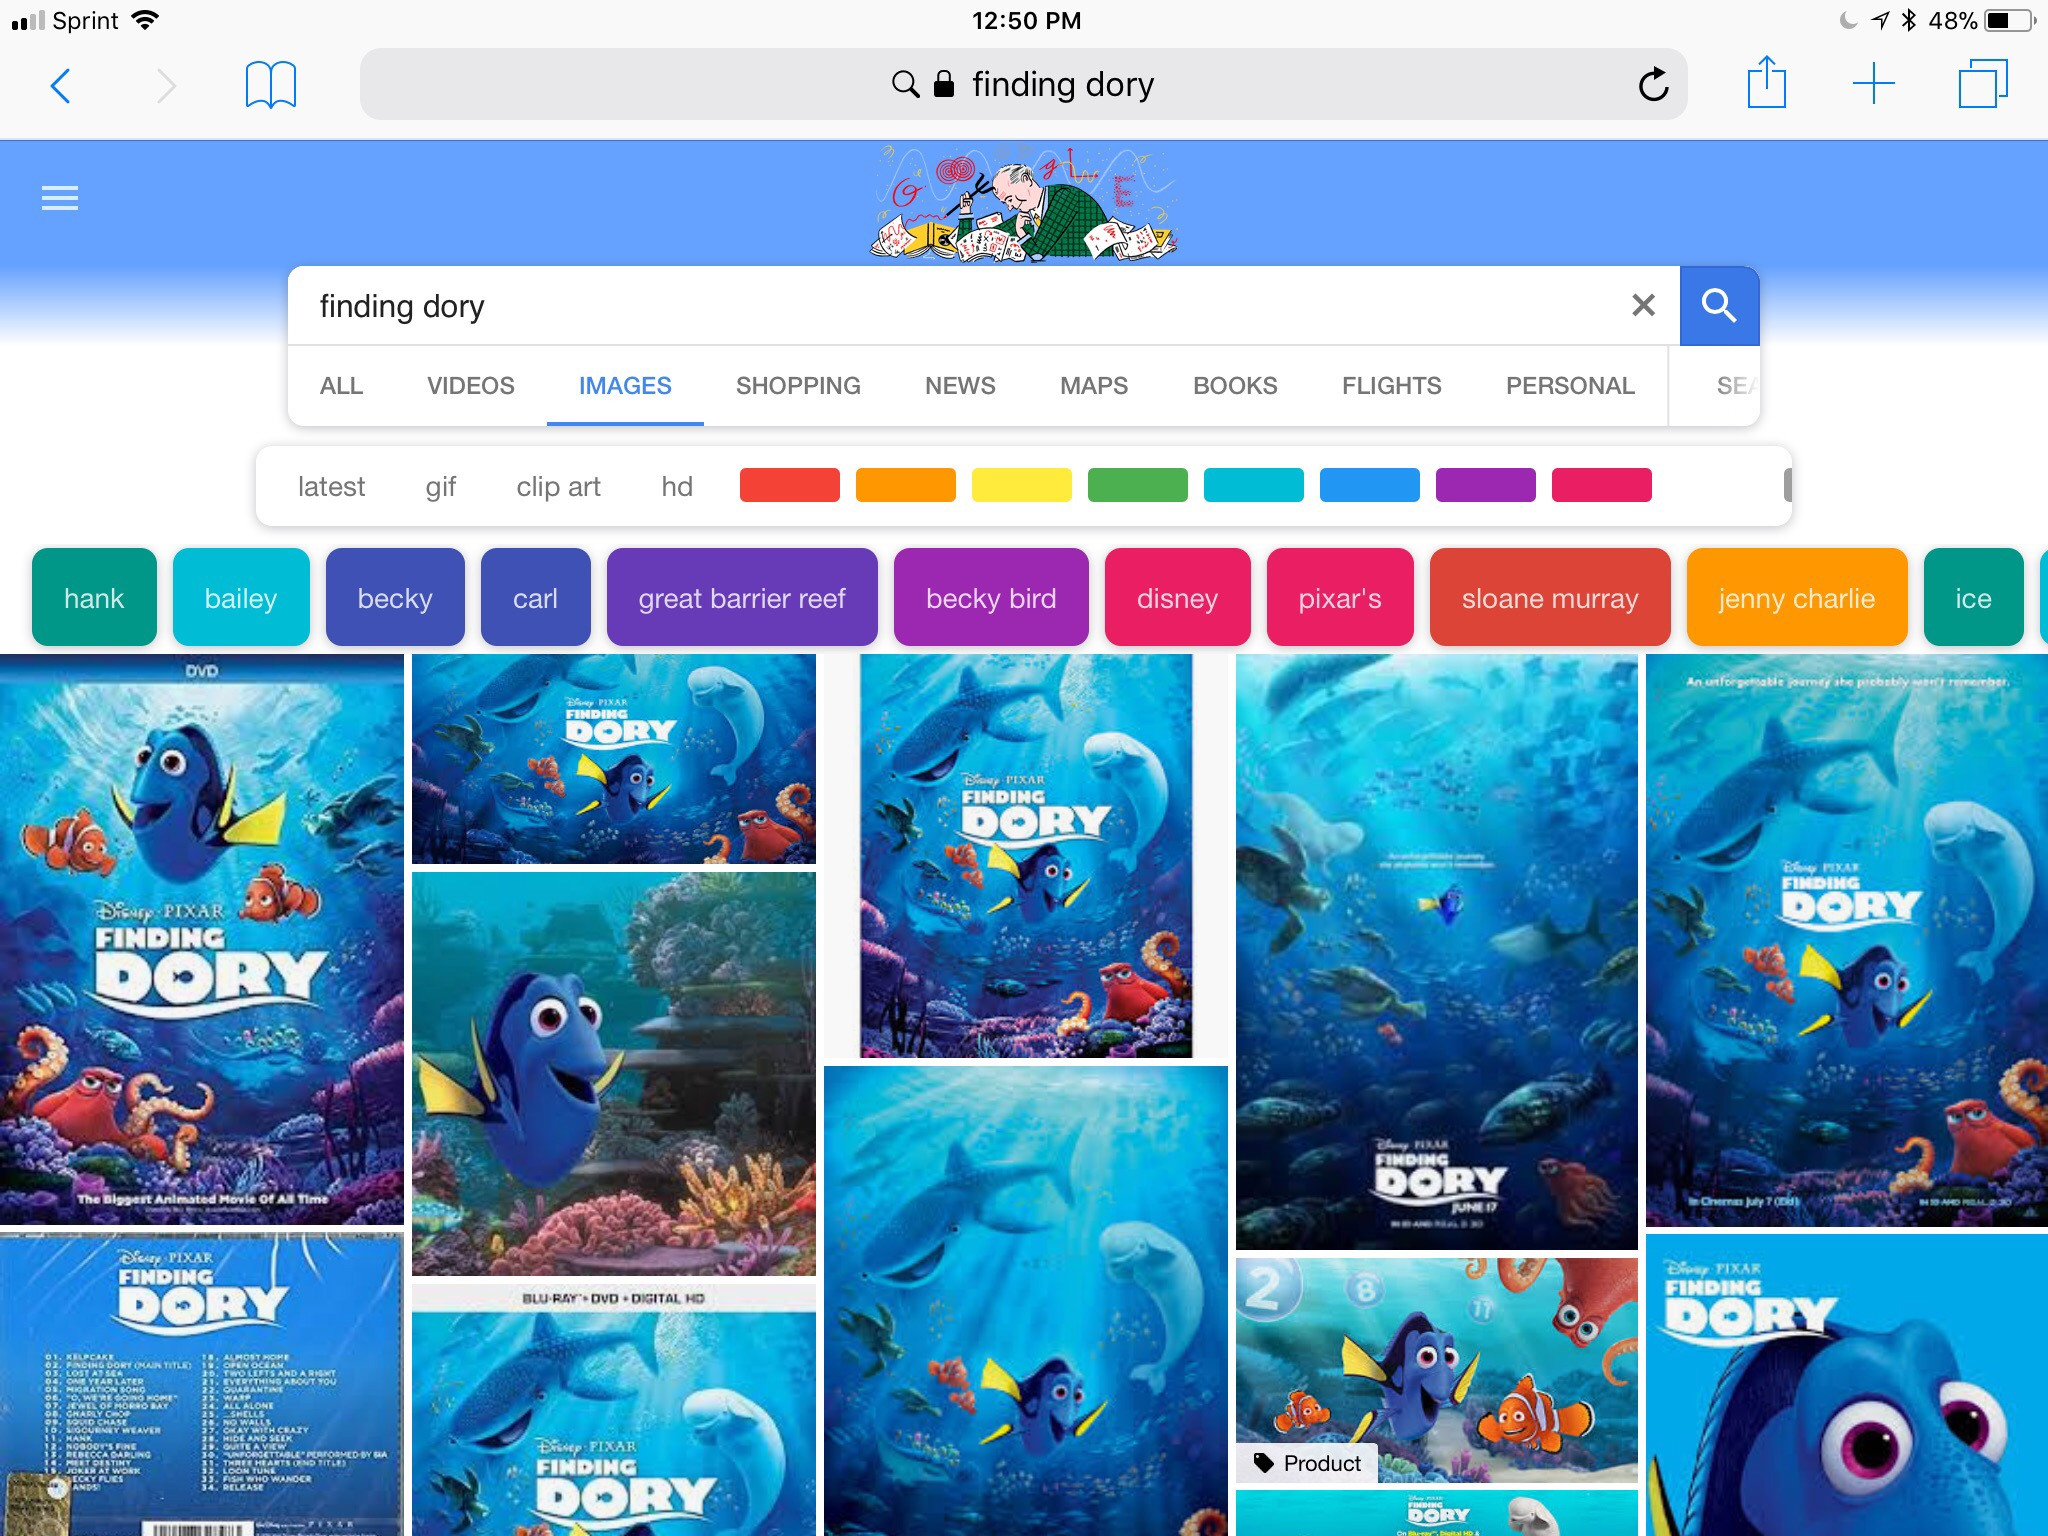 Screenshot of available Finding Dory images during a  Google Internet search.